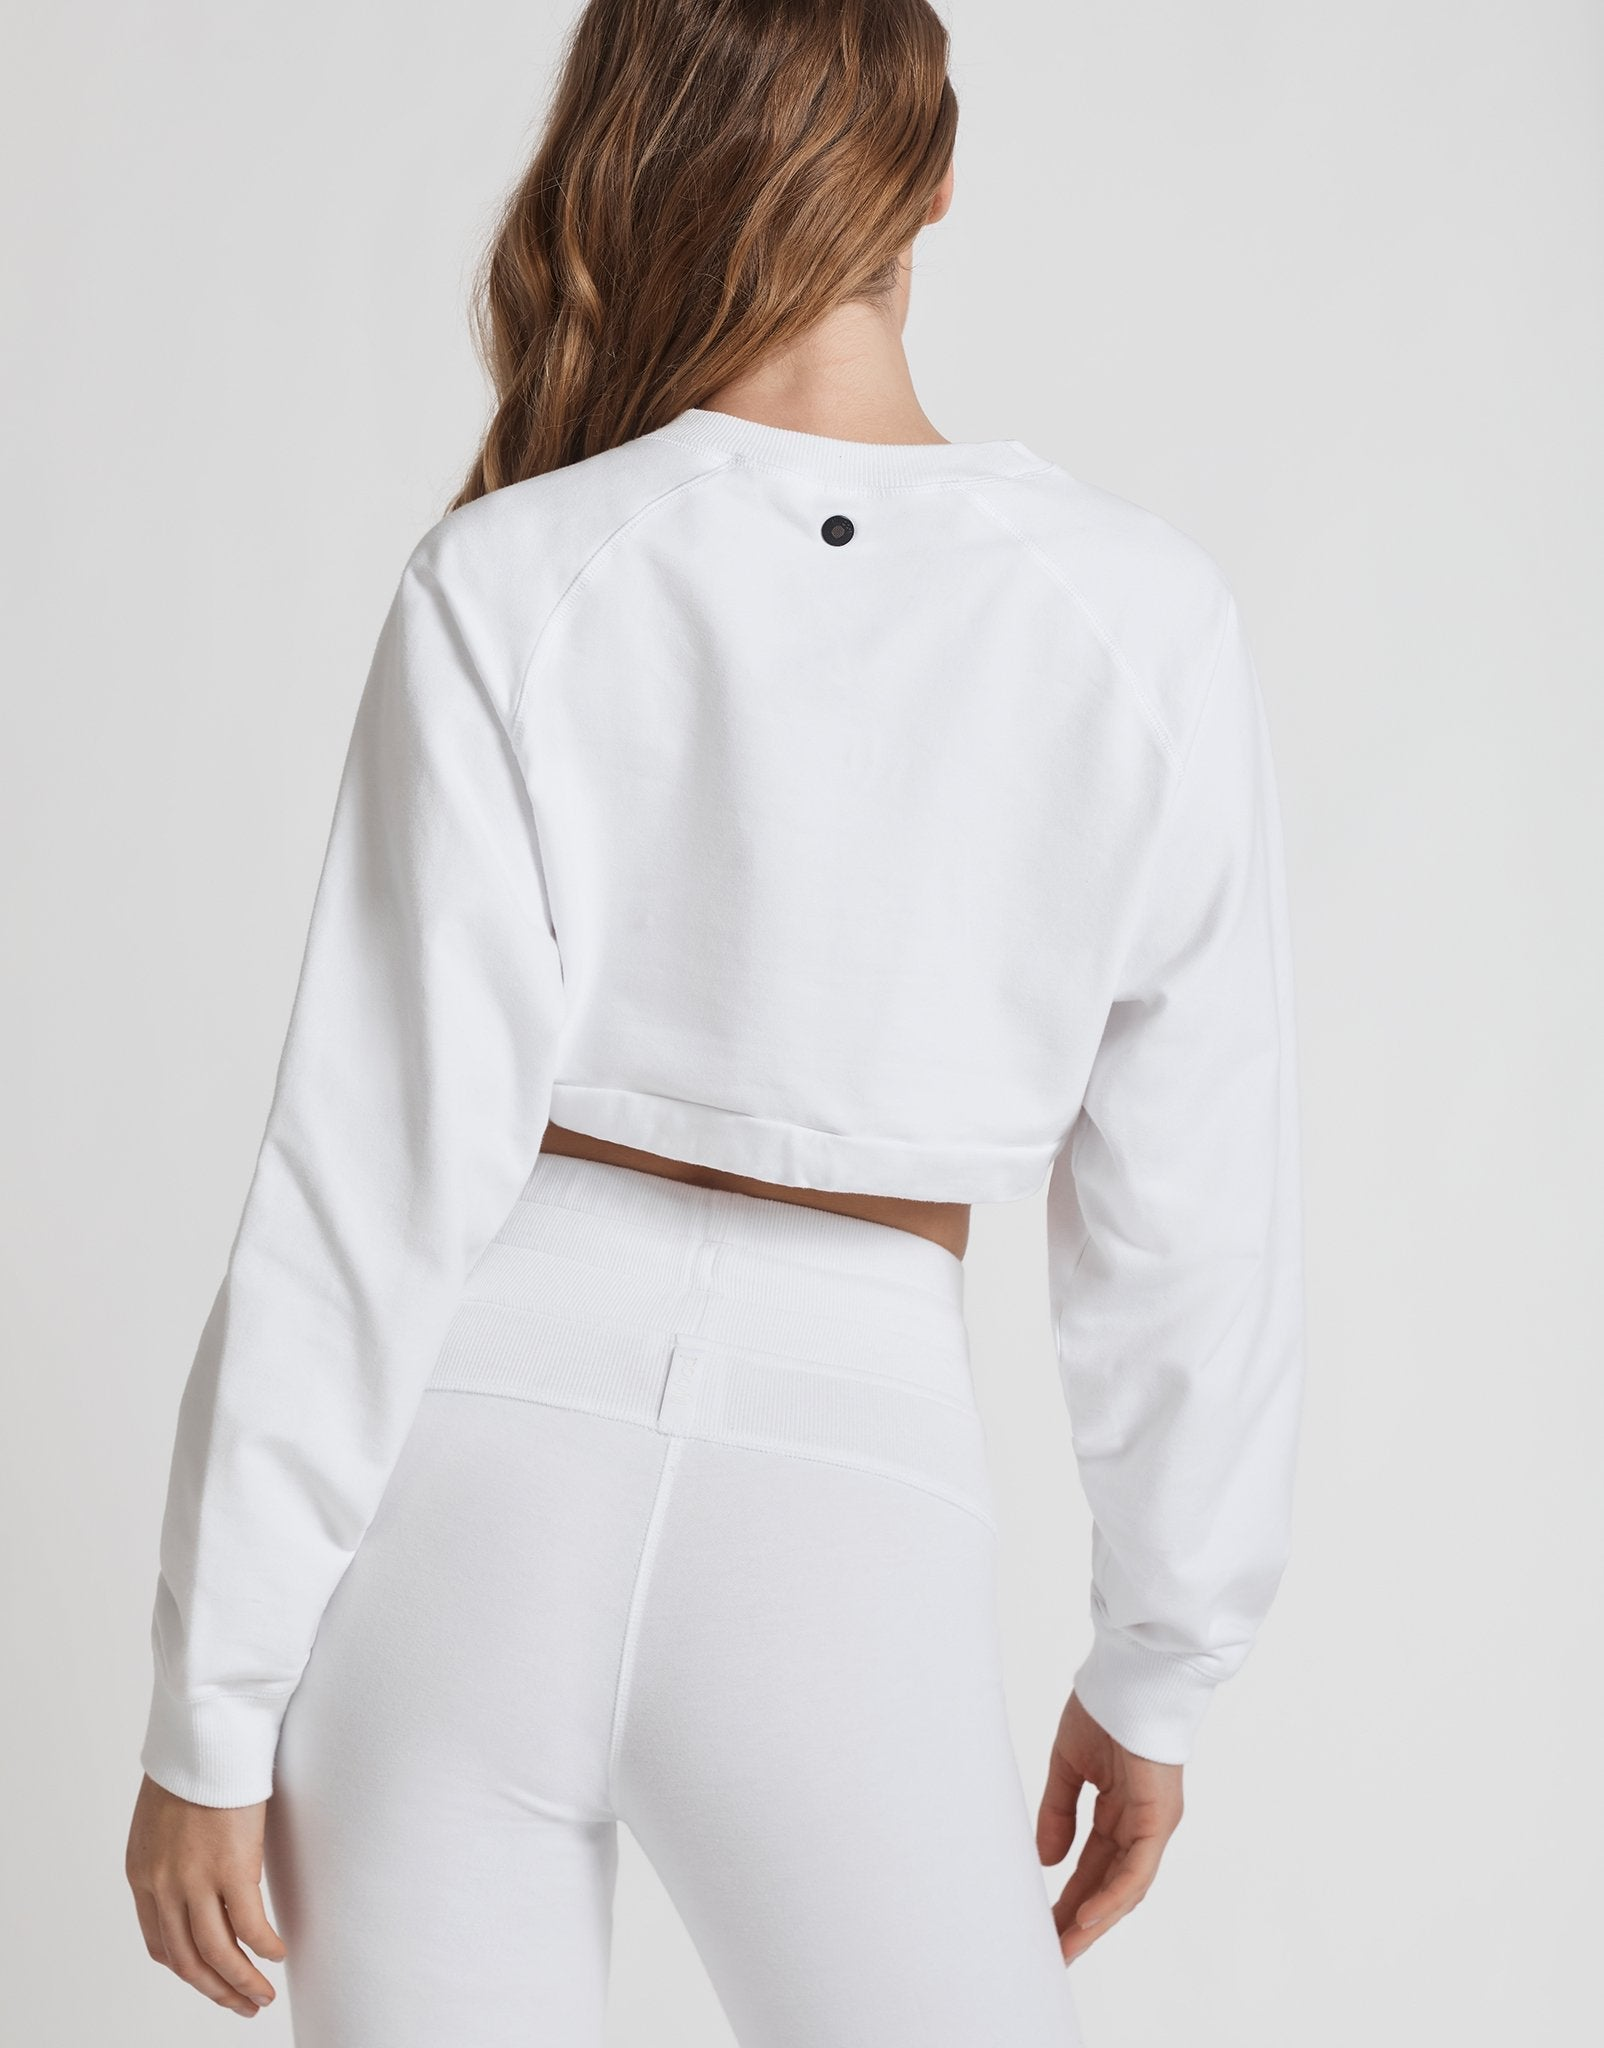 Lilybod-Carla-White-Sweat-Toggle-Waist-front-x.jpg